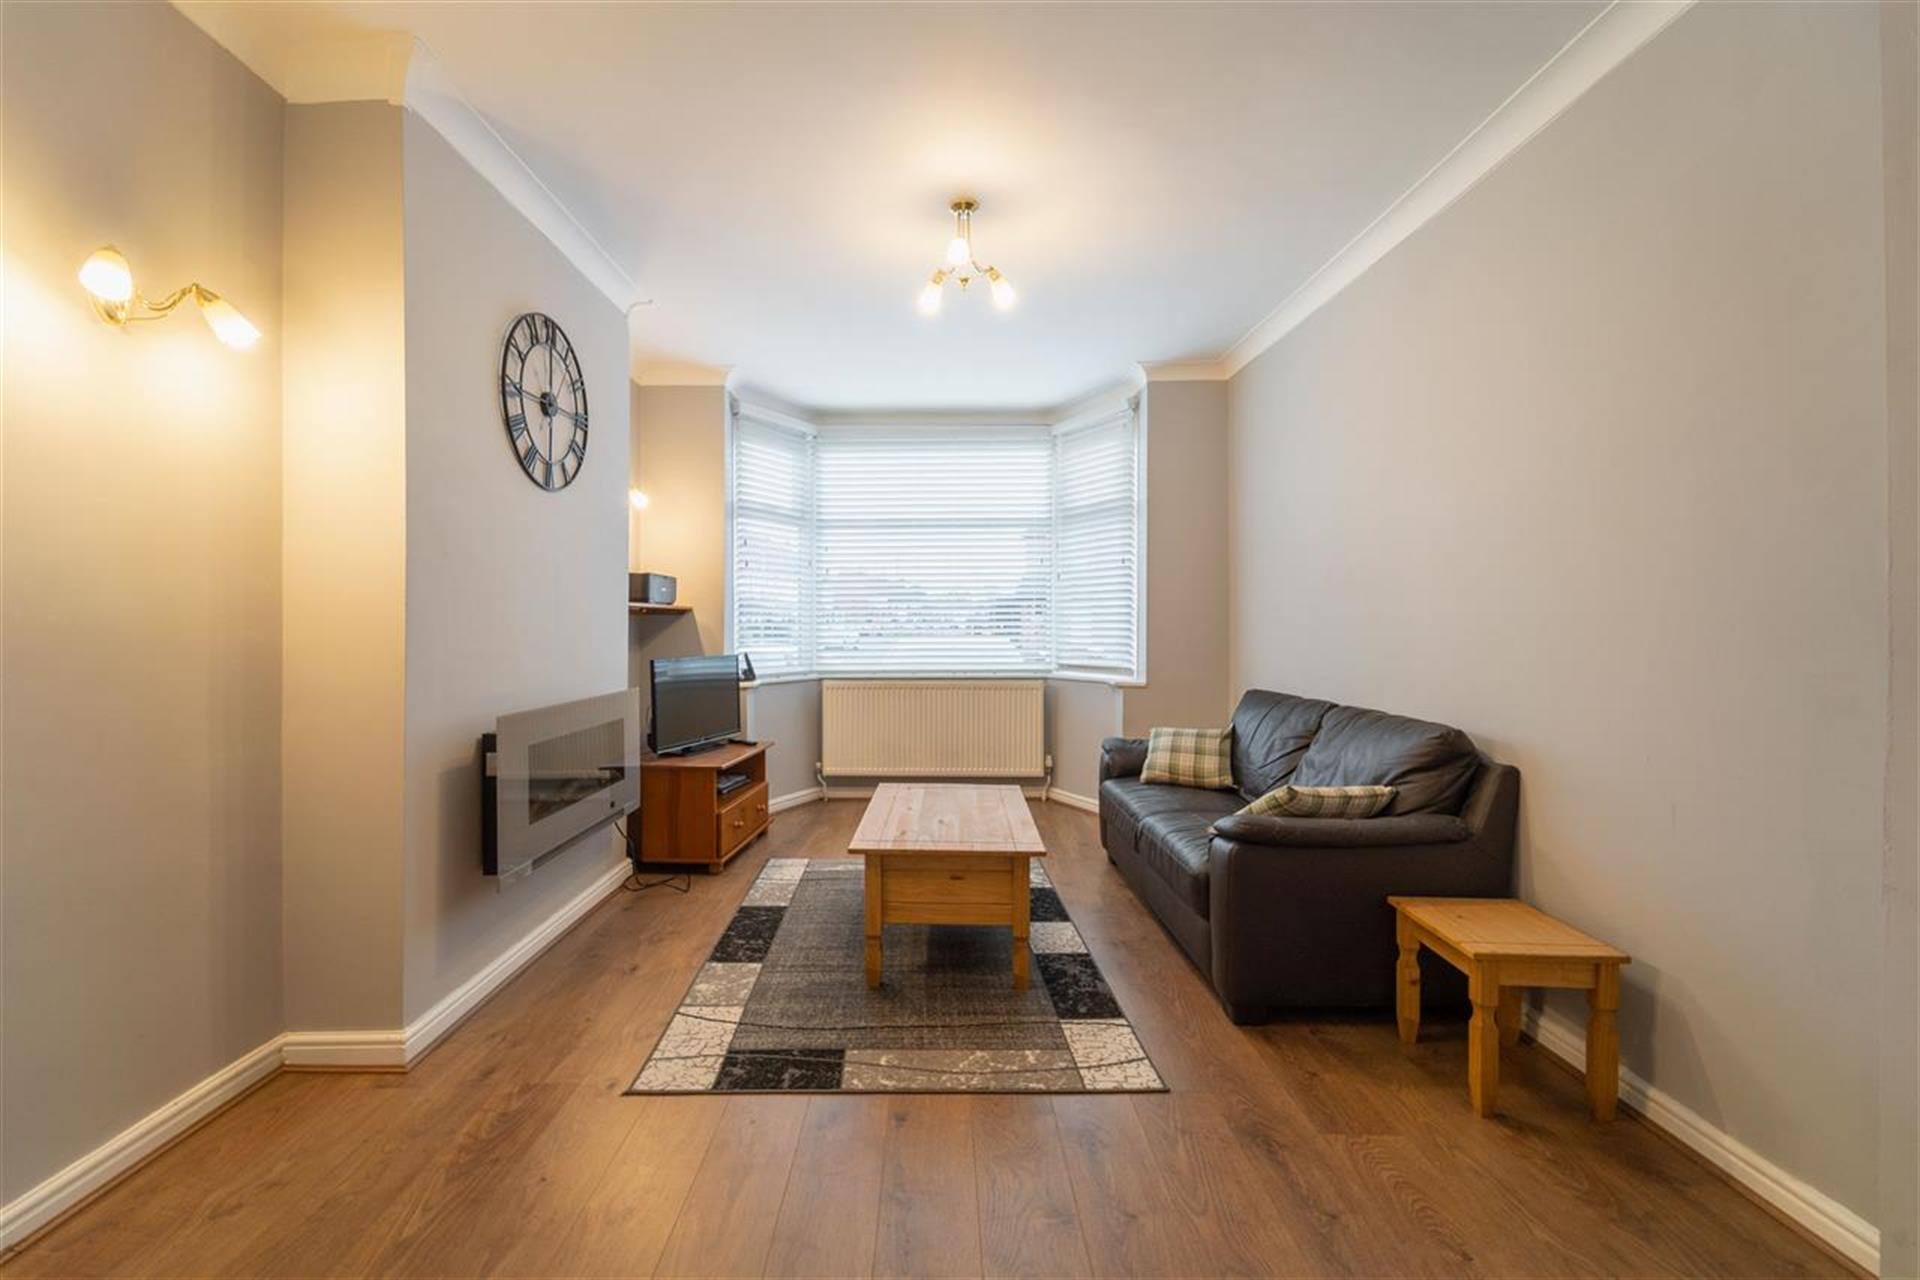 3 Bedroom Semi-detached House For Sale - Lounge